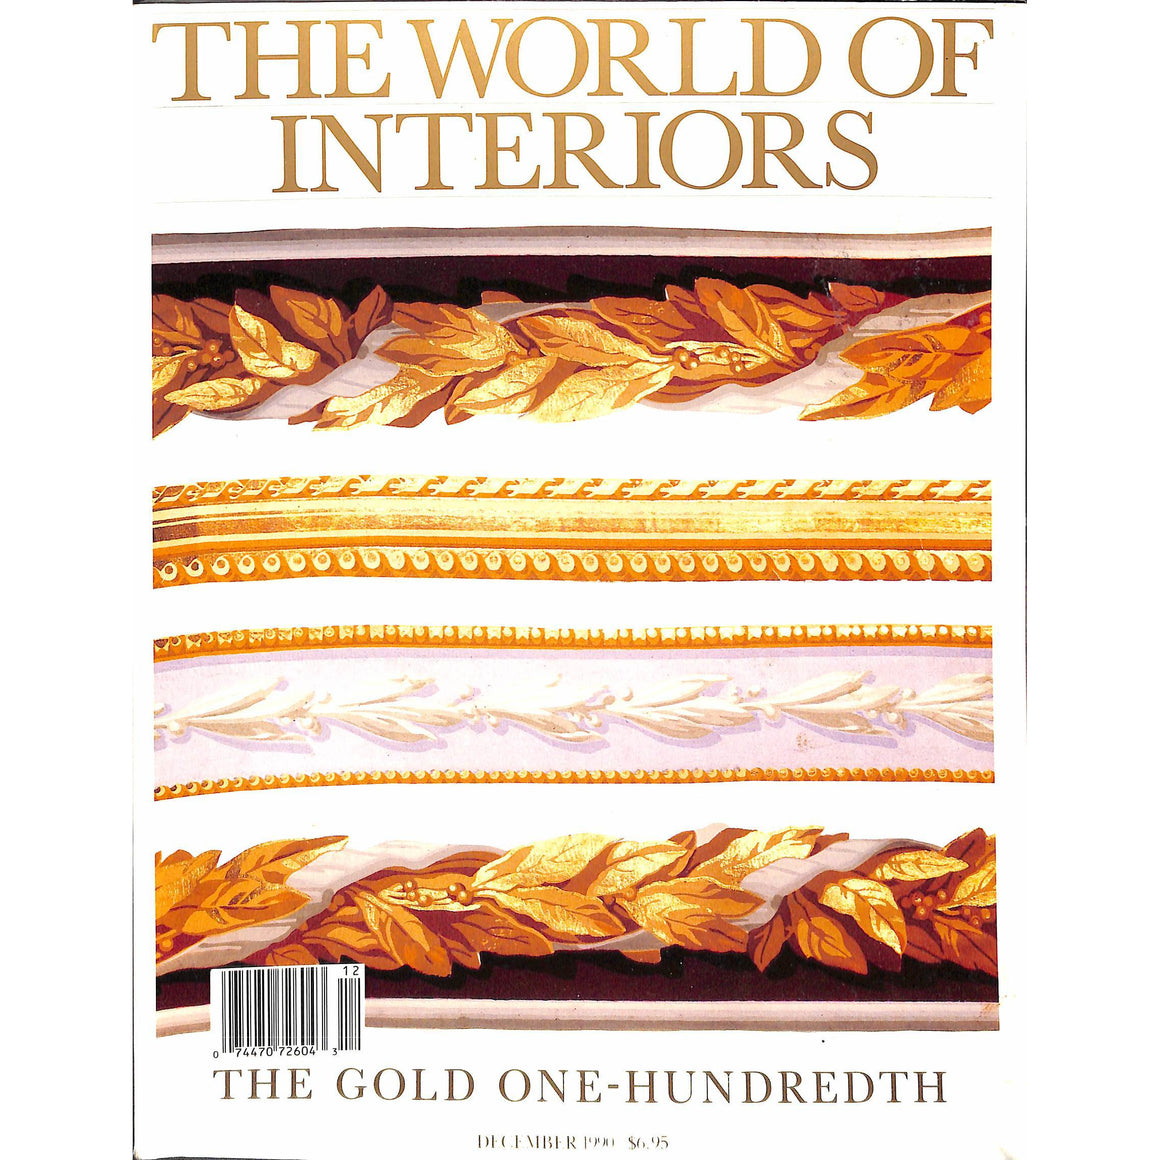 'The World of Interiors December 1990'